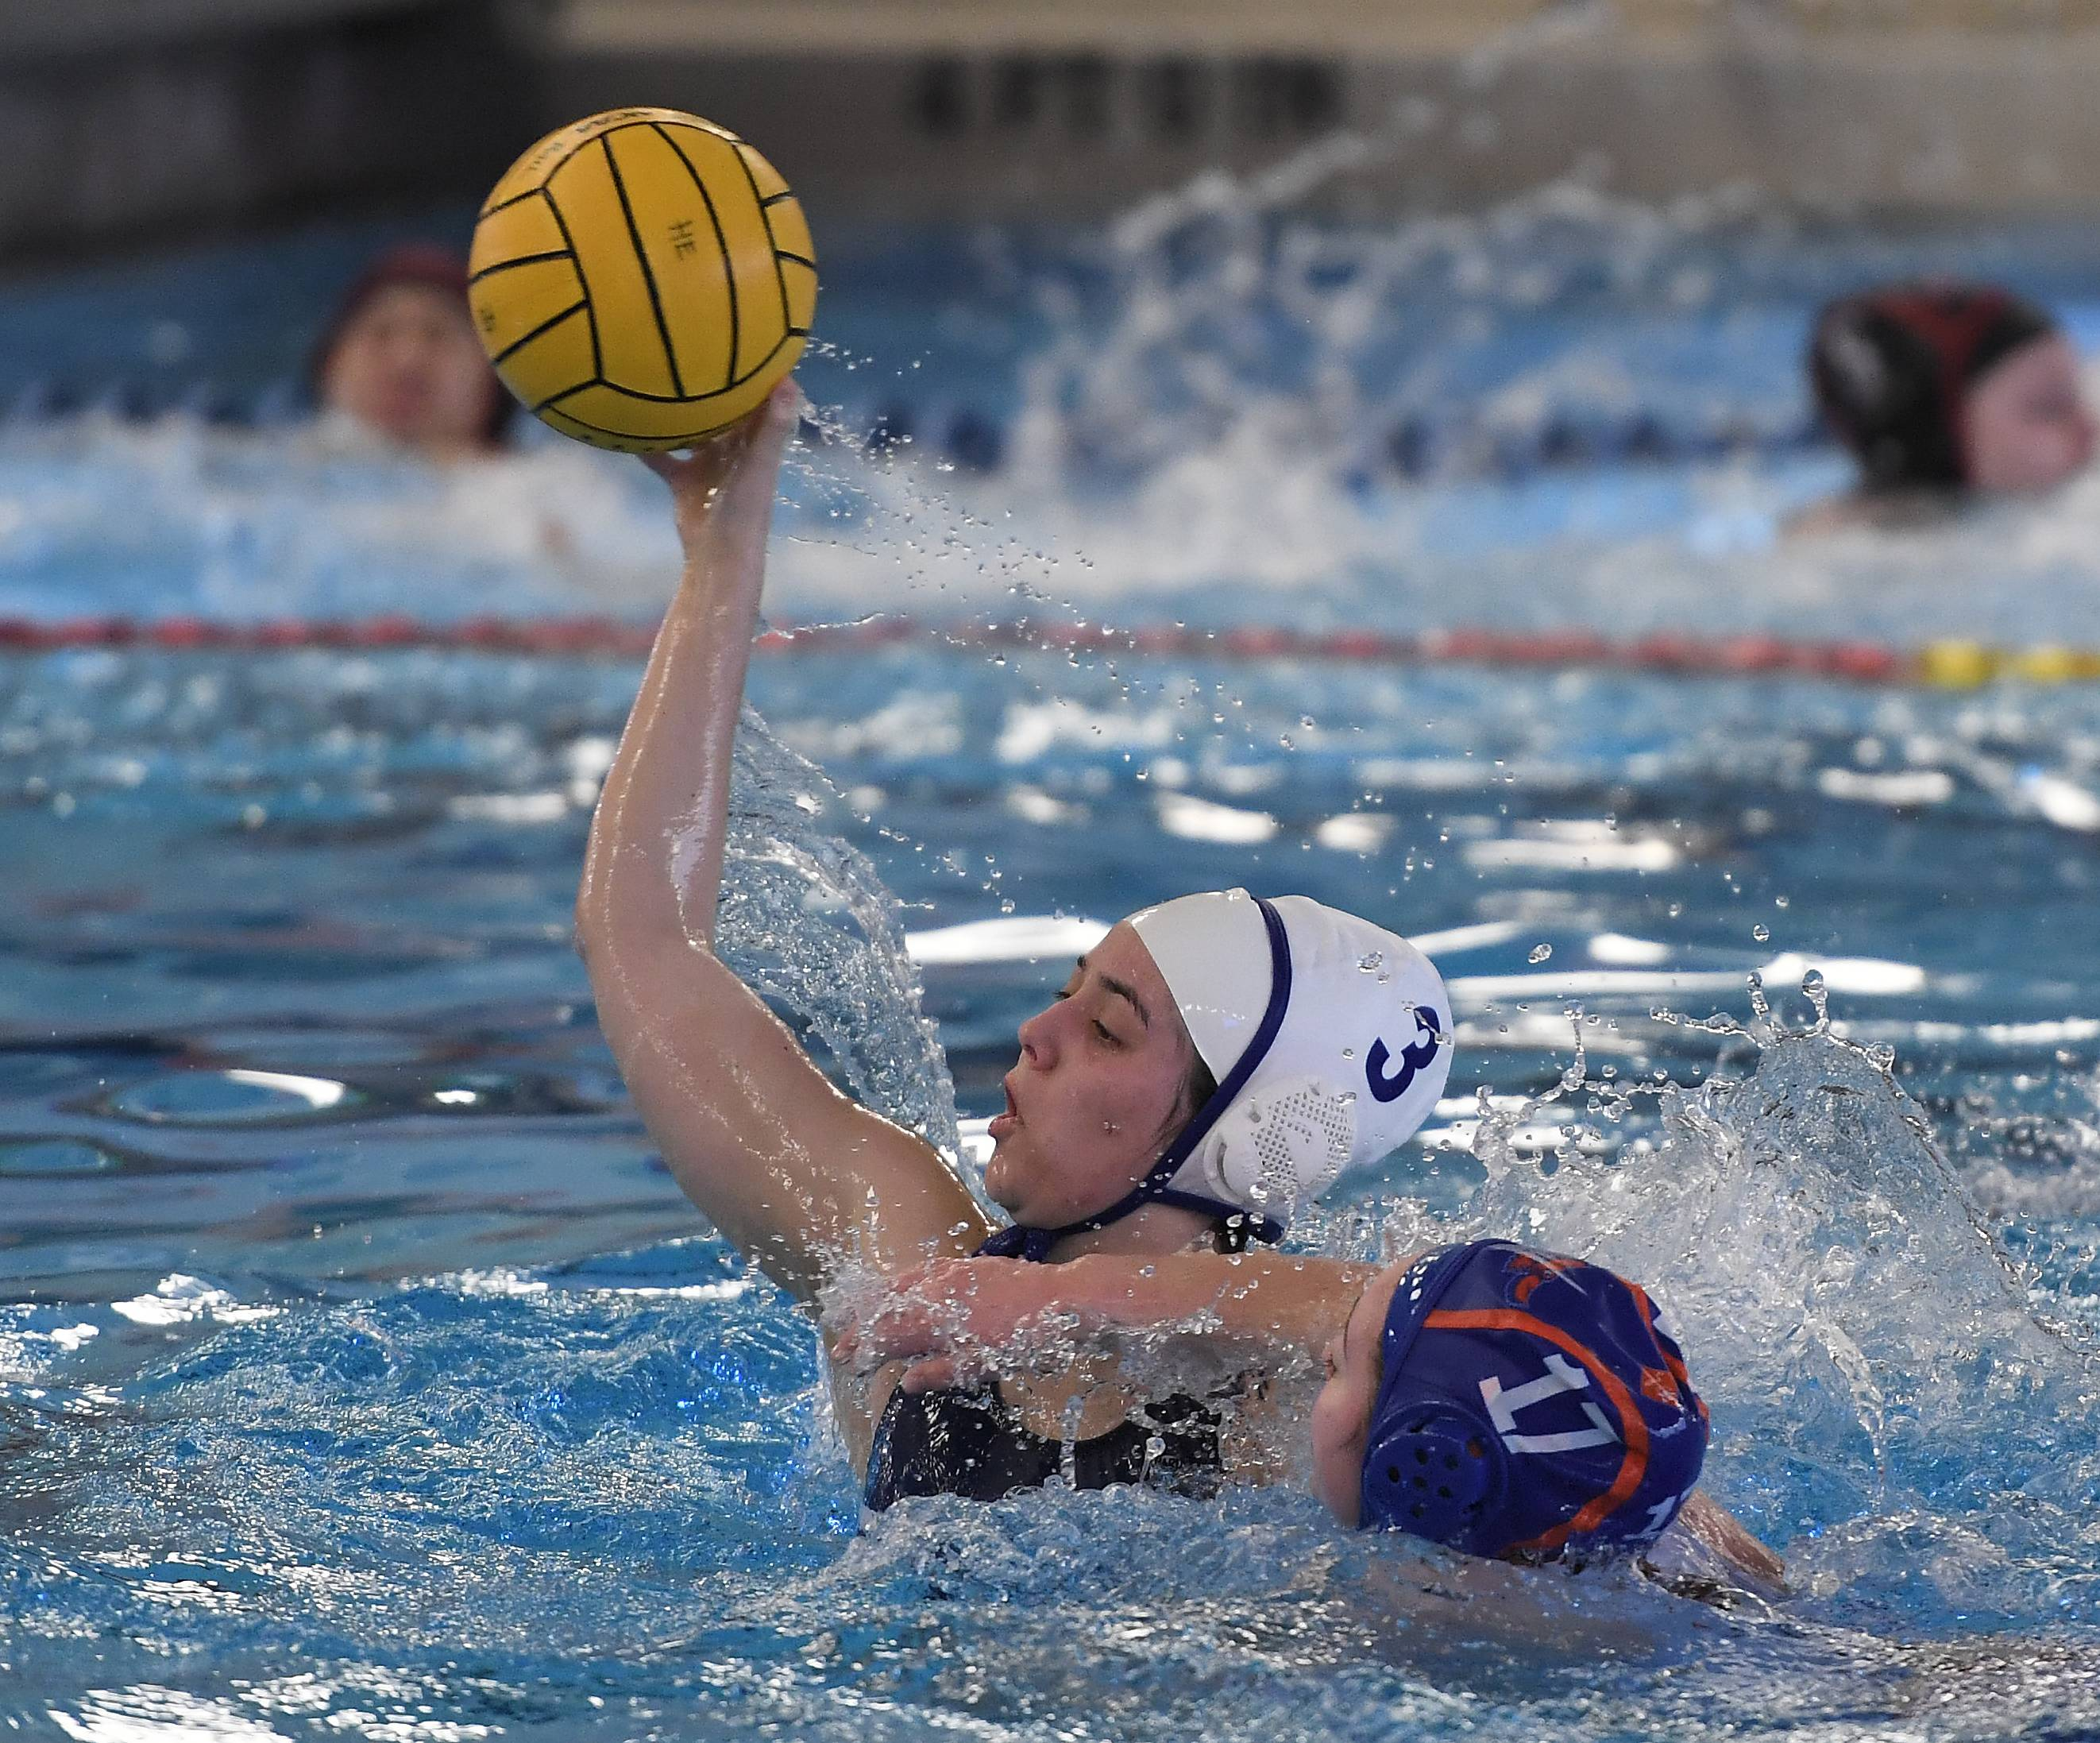 Vernon Hill's Allie Pappas fires the ball as Hoffman Estates' Ak Hughes applies pressure during the Hoffman Estates girls water polo invite on Saturday.